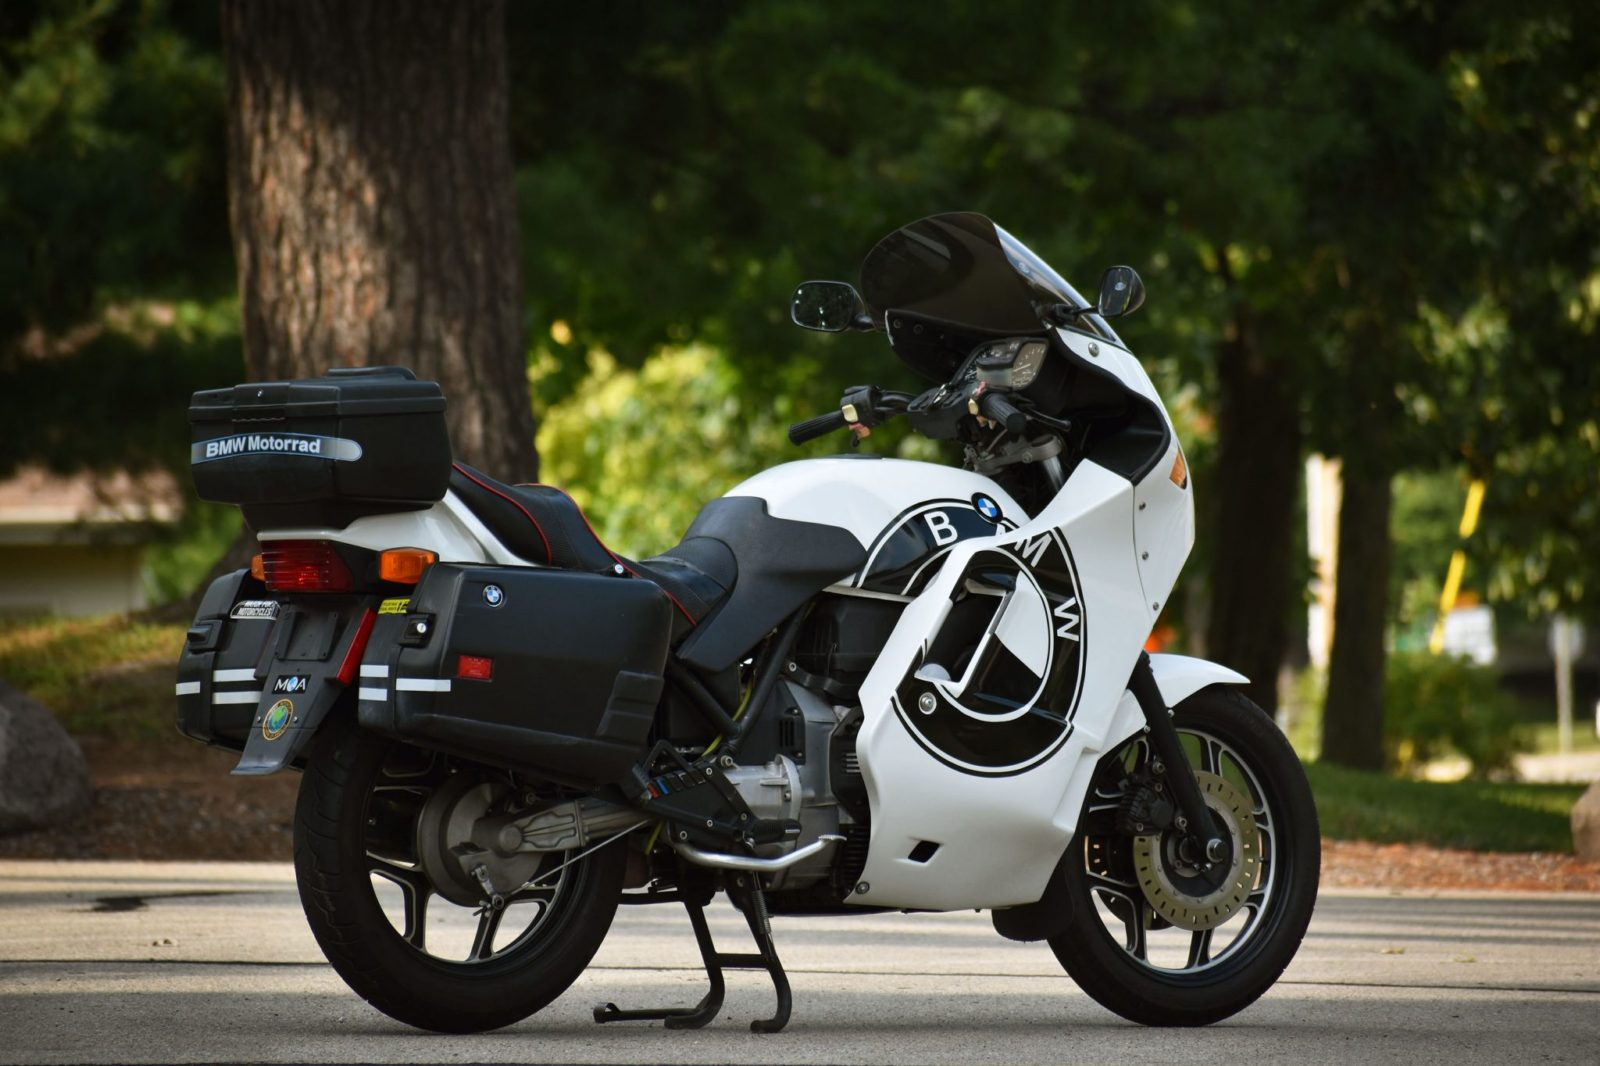 this-1988-bmw-k-75-c-wears-pichler-fairings-with-pride,-rolls-on-michelin-rubber